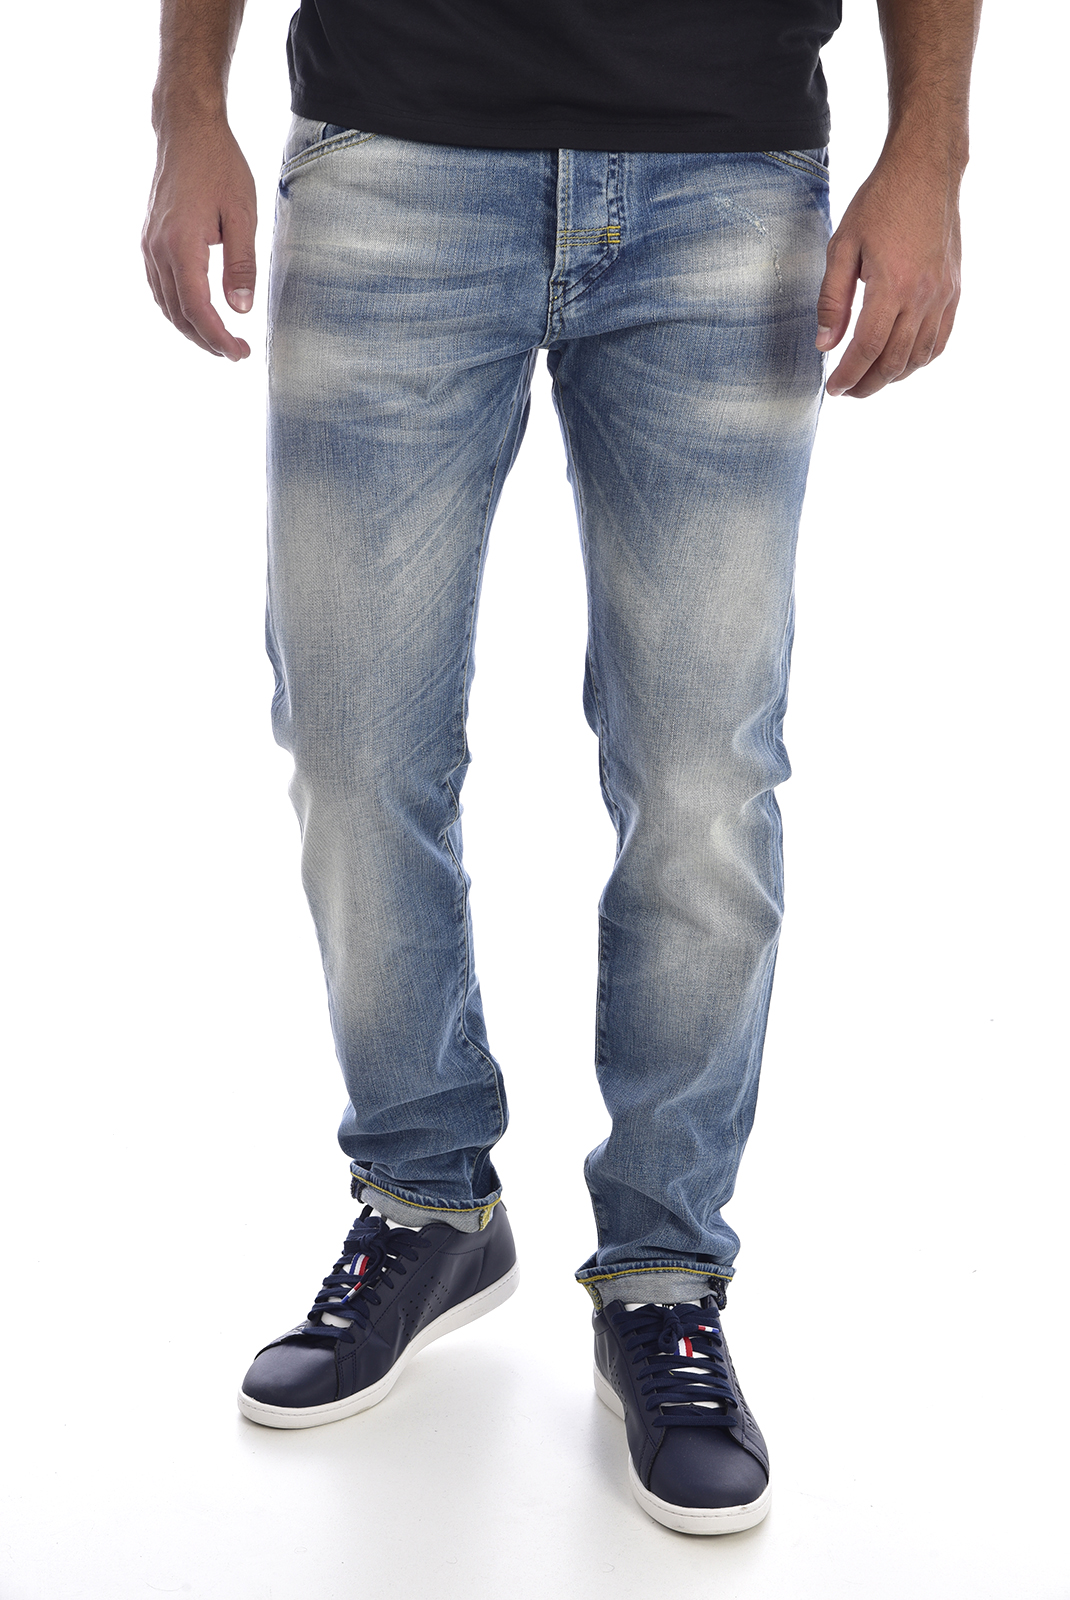 Jeans  Meltin'pot MELTON D1577 UB521 BS15 BLEU